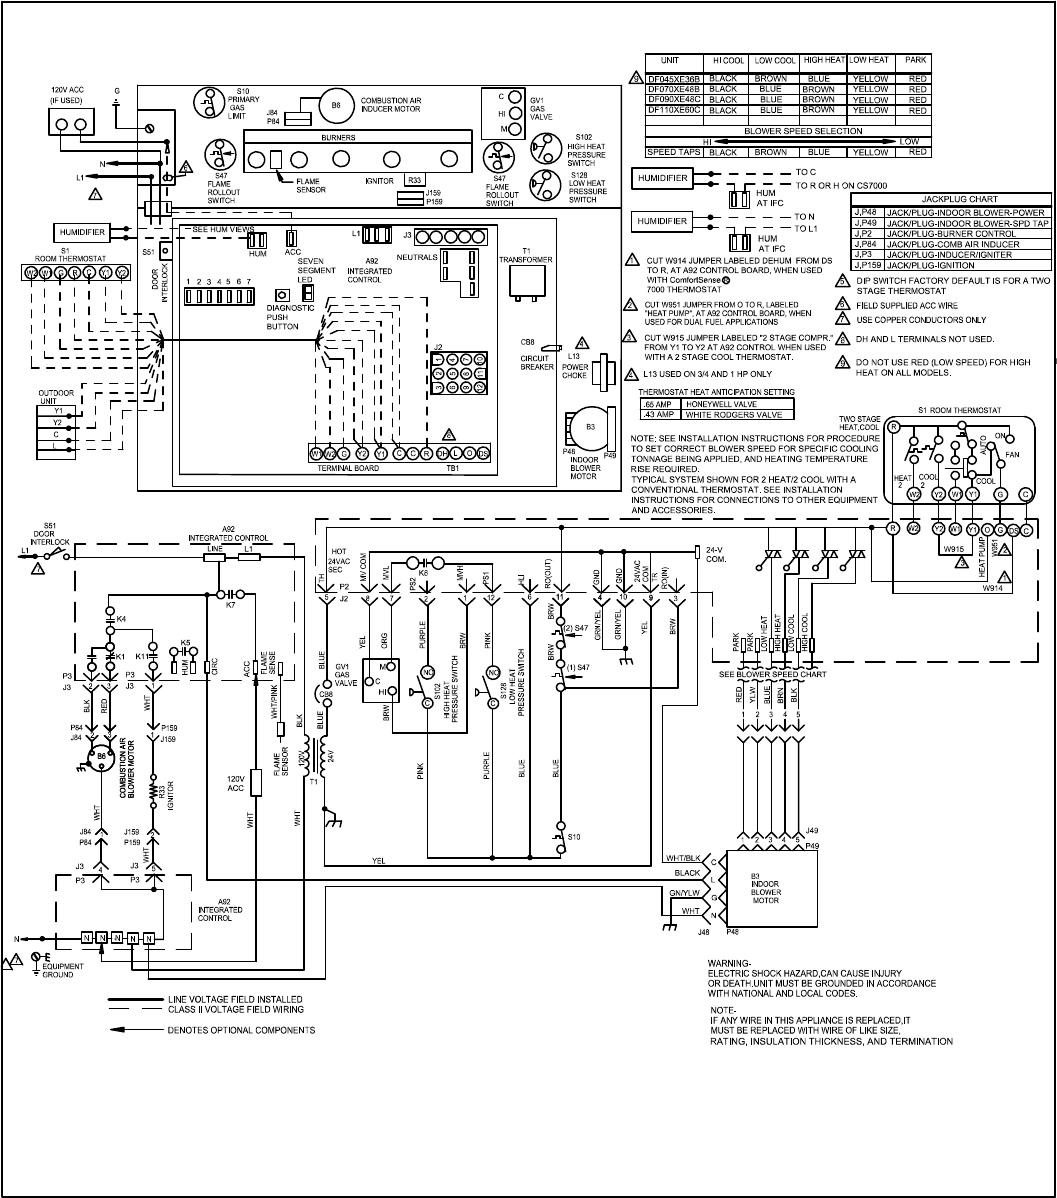 wiring diagram jeep wrangler yj images 1926 ford model t wiring diagram wiring diagram online